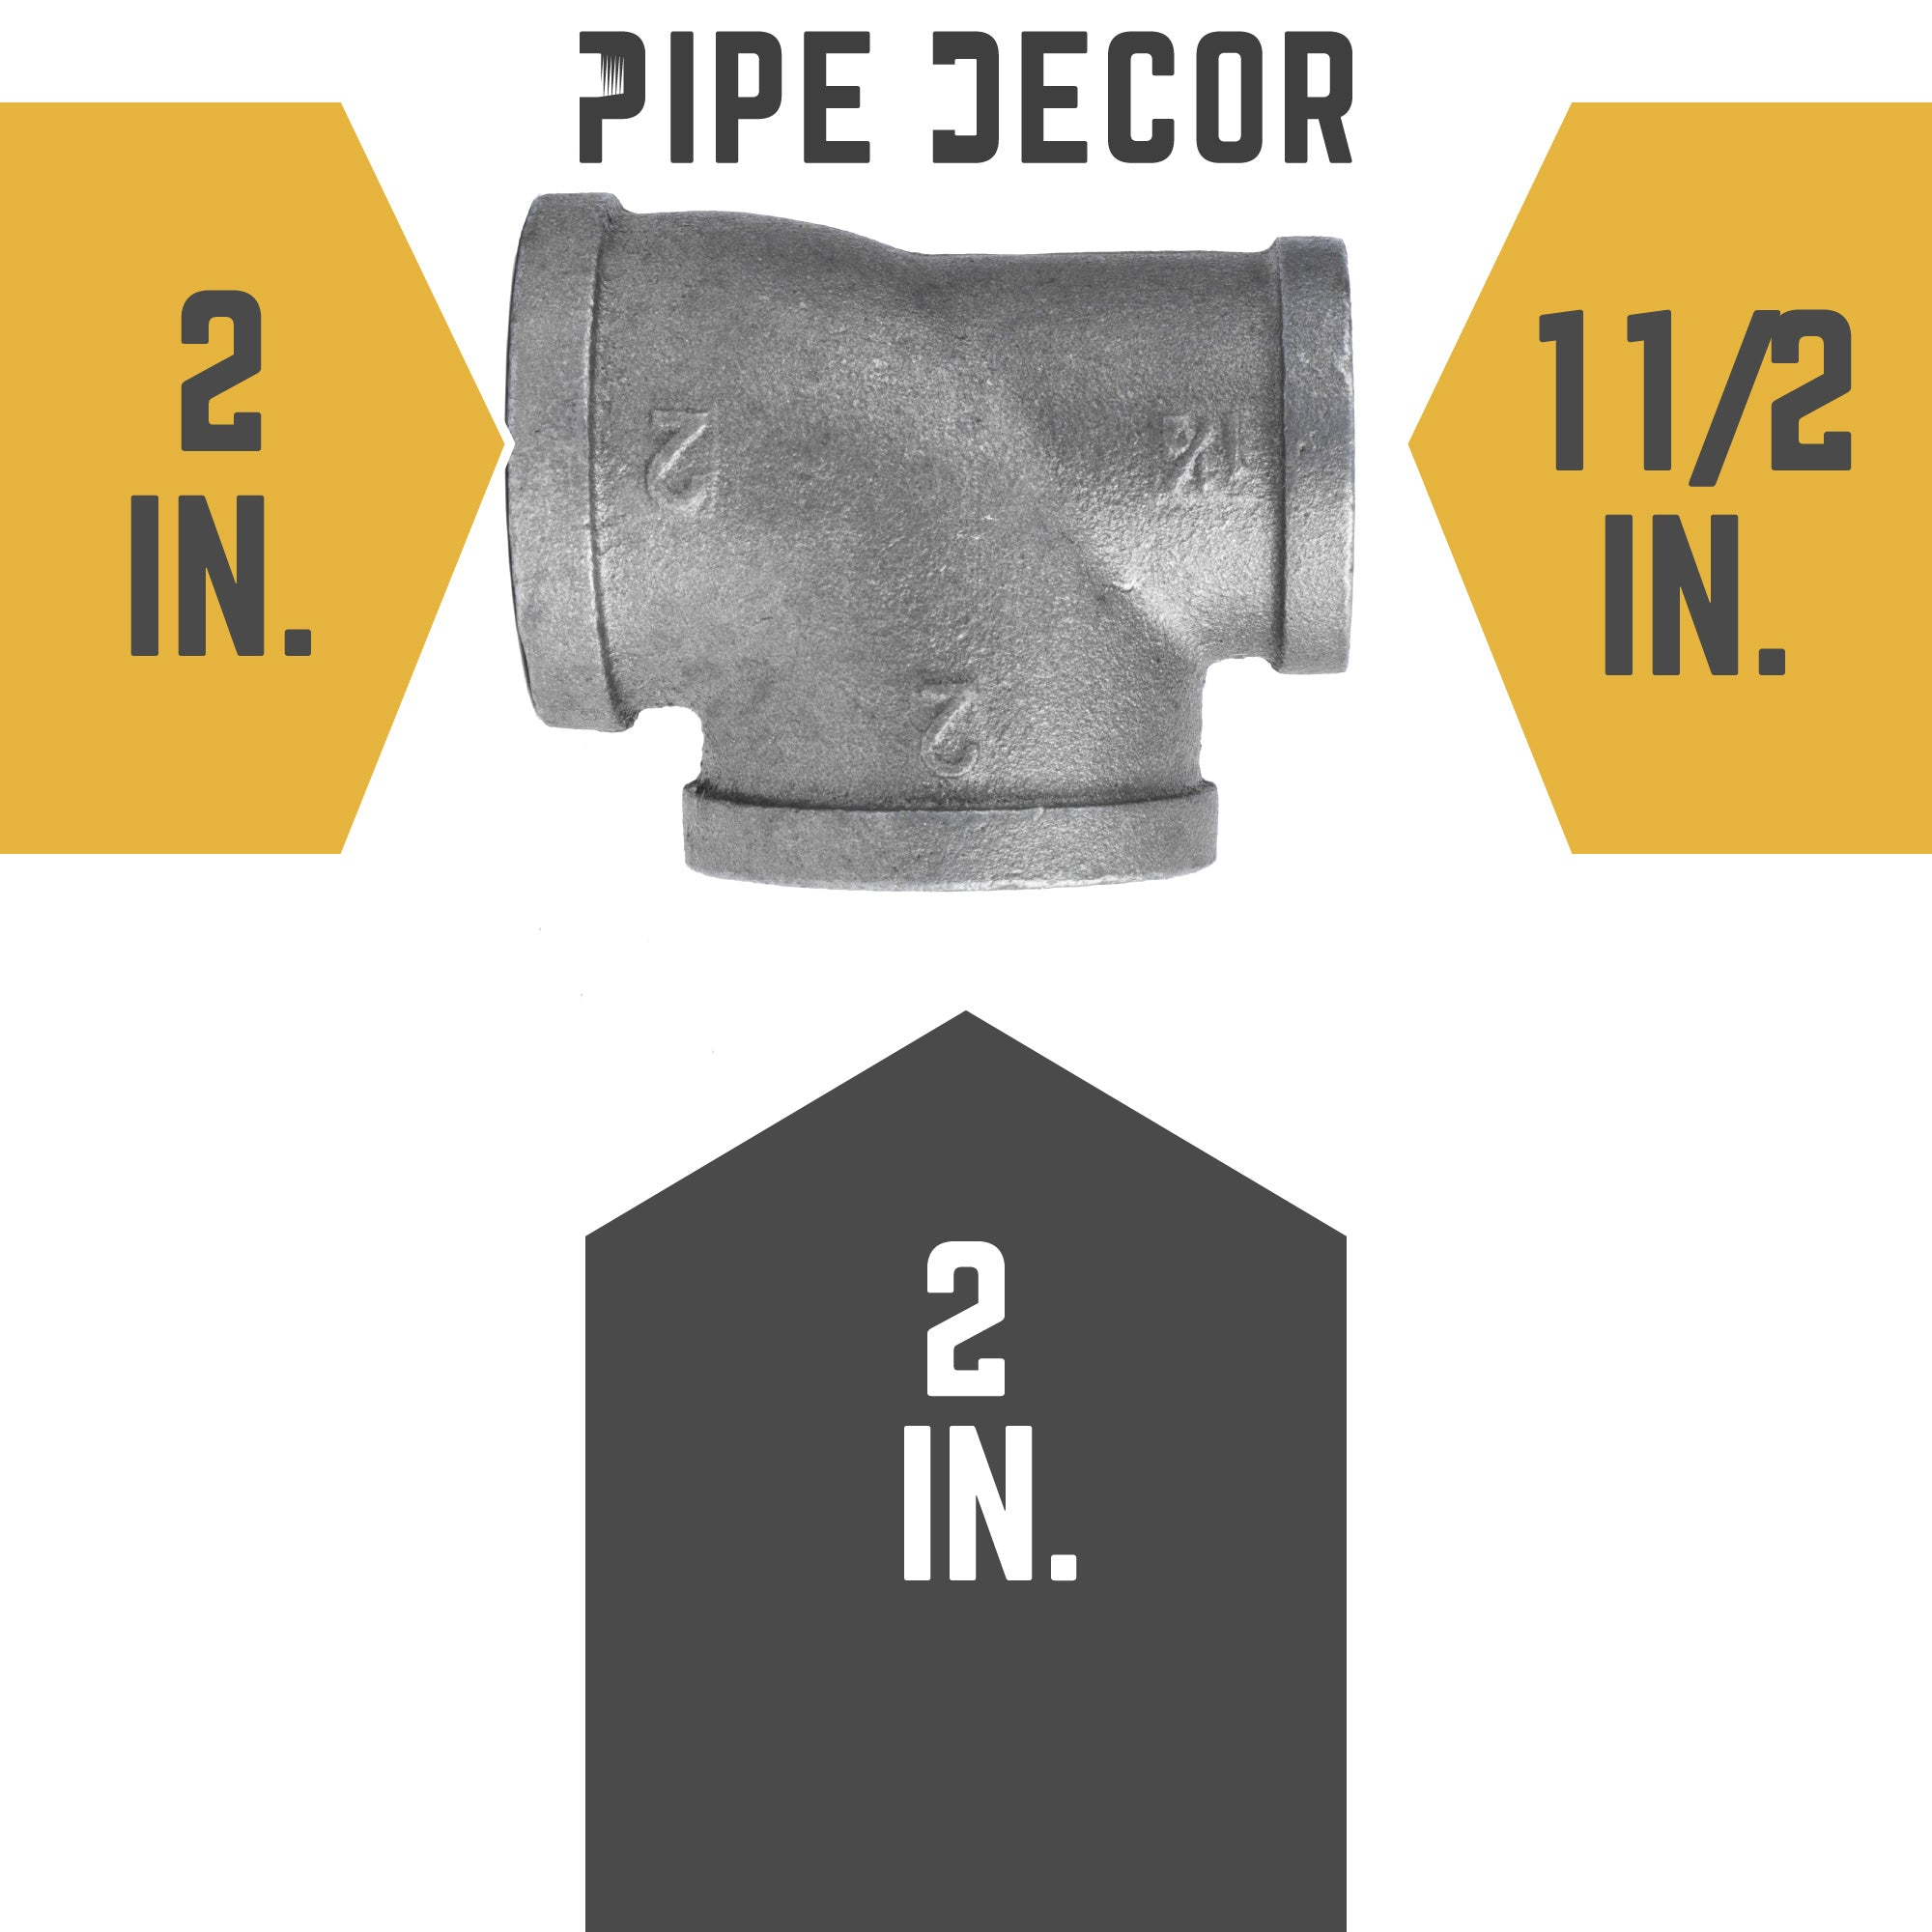 2 in. X 1 1/2 in.  X 2 in. Black Reducing Tee - Pipe Decor